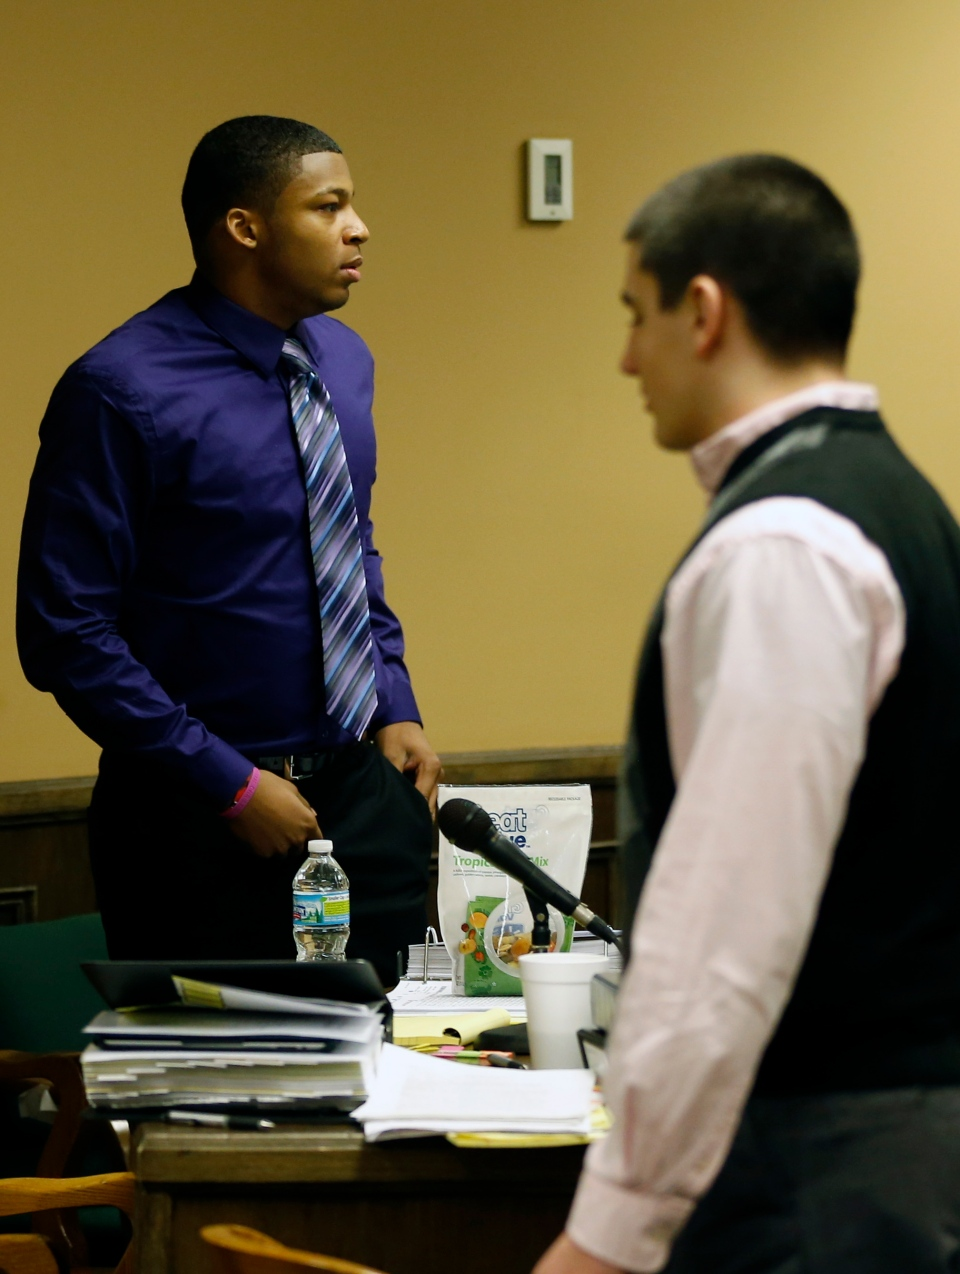 Ma'lik Richmond, 16, left, and co-defendant Trent Mays, 17, right, walks around in the court room during a break on the fourth day of the juvenile trial for he and co-defendant on rape charges in juvenile court in Steubenville, Ohio on Saturday, March 16, 2013.  (AP / Keith Srakocic)